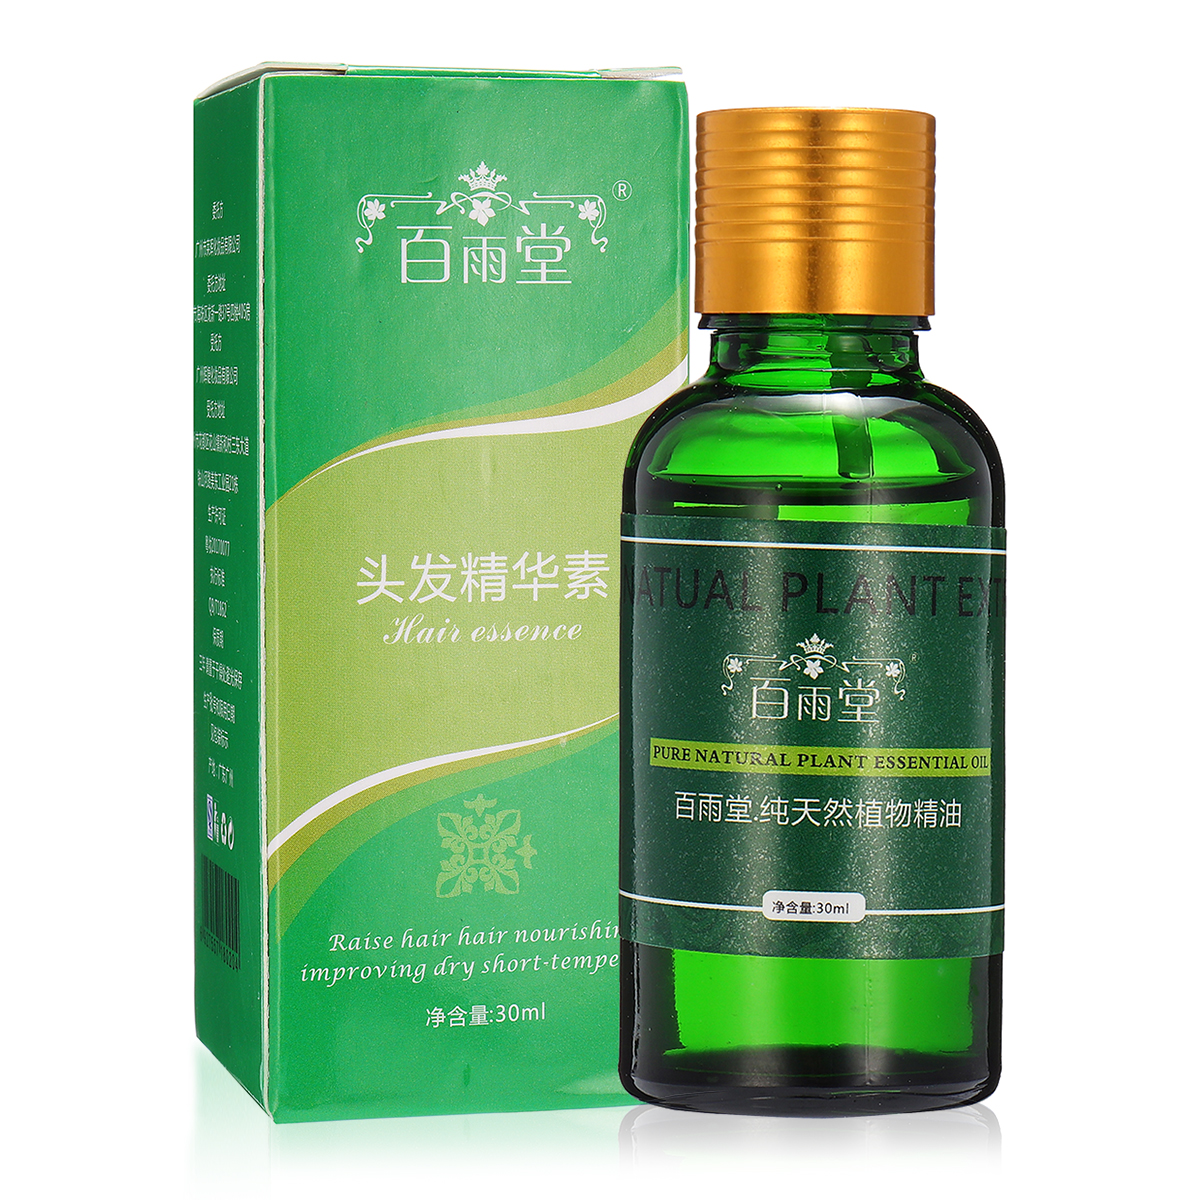 Natural Plant Extract Hair Care Essence 30ml